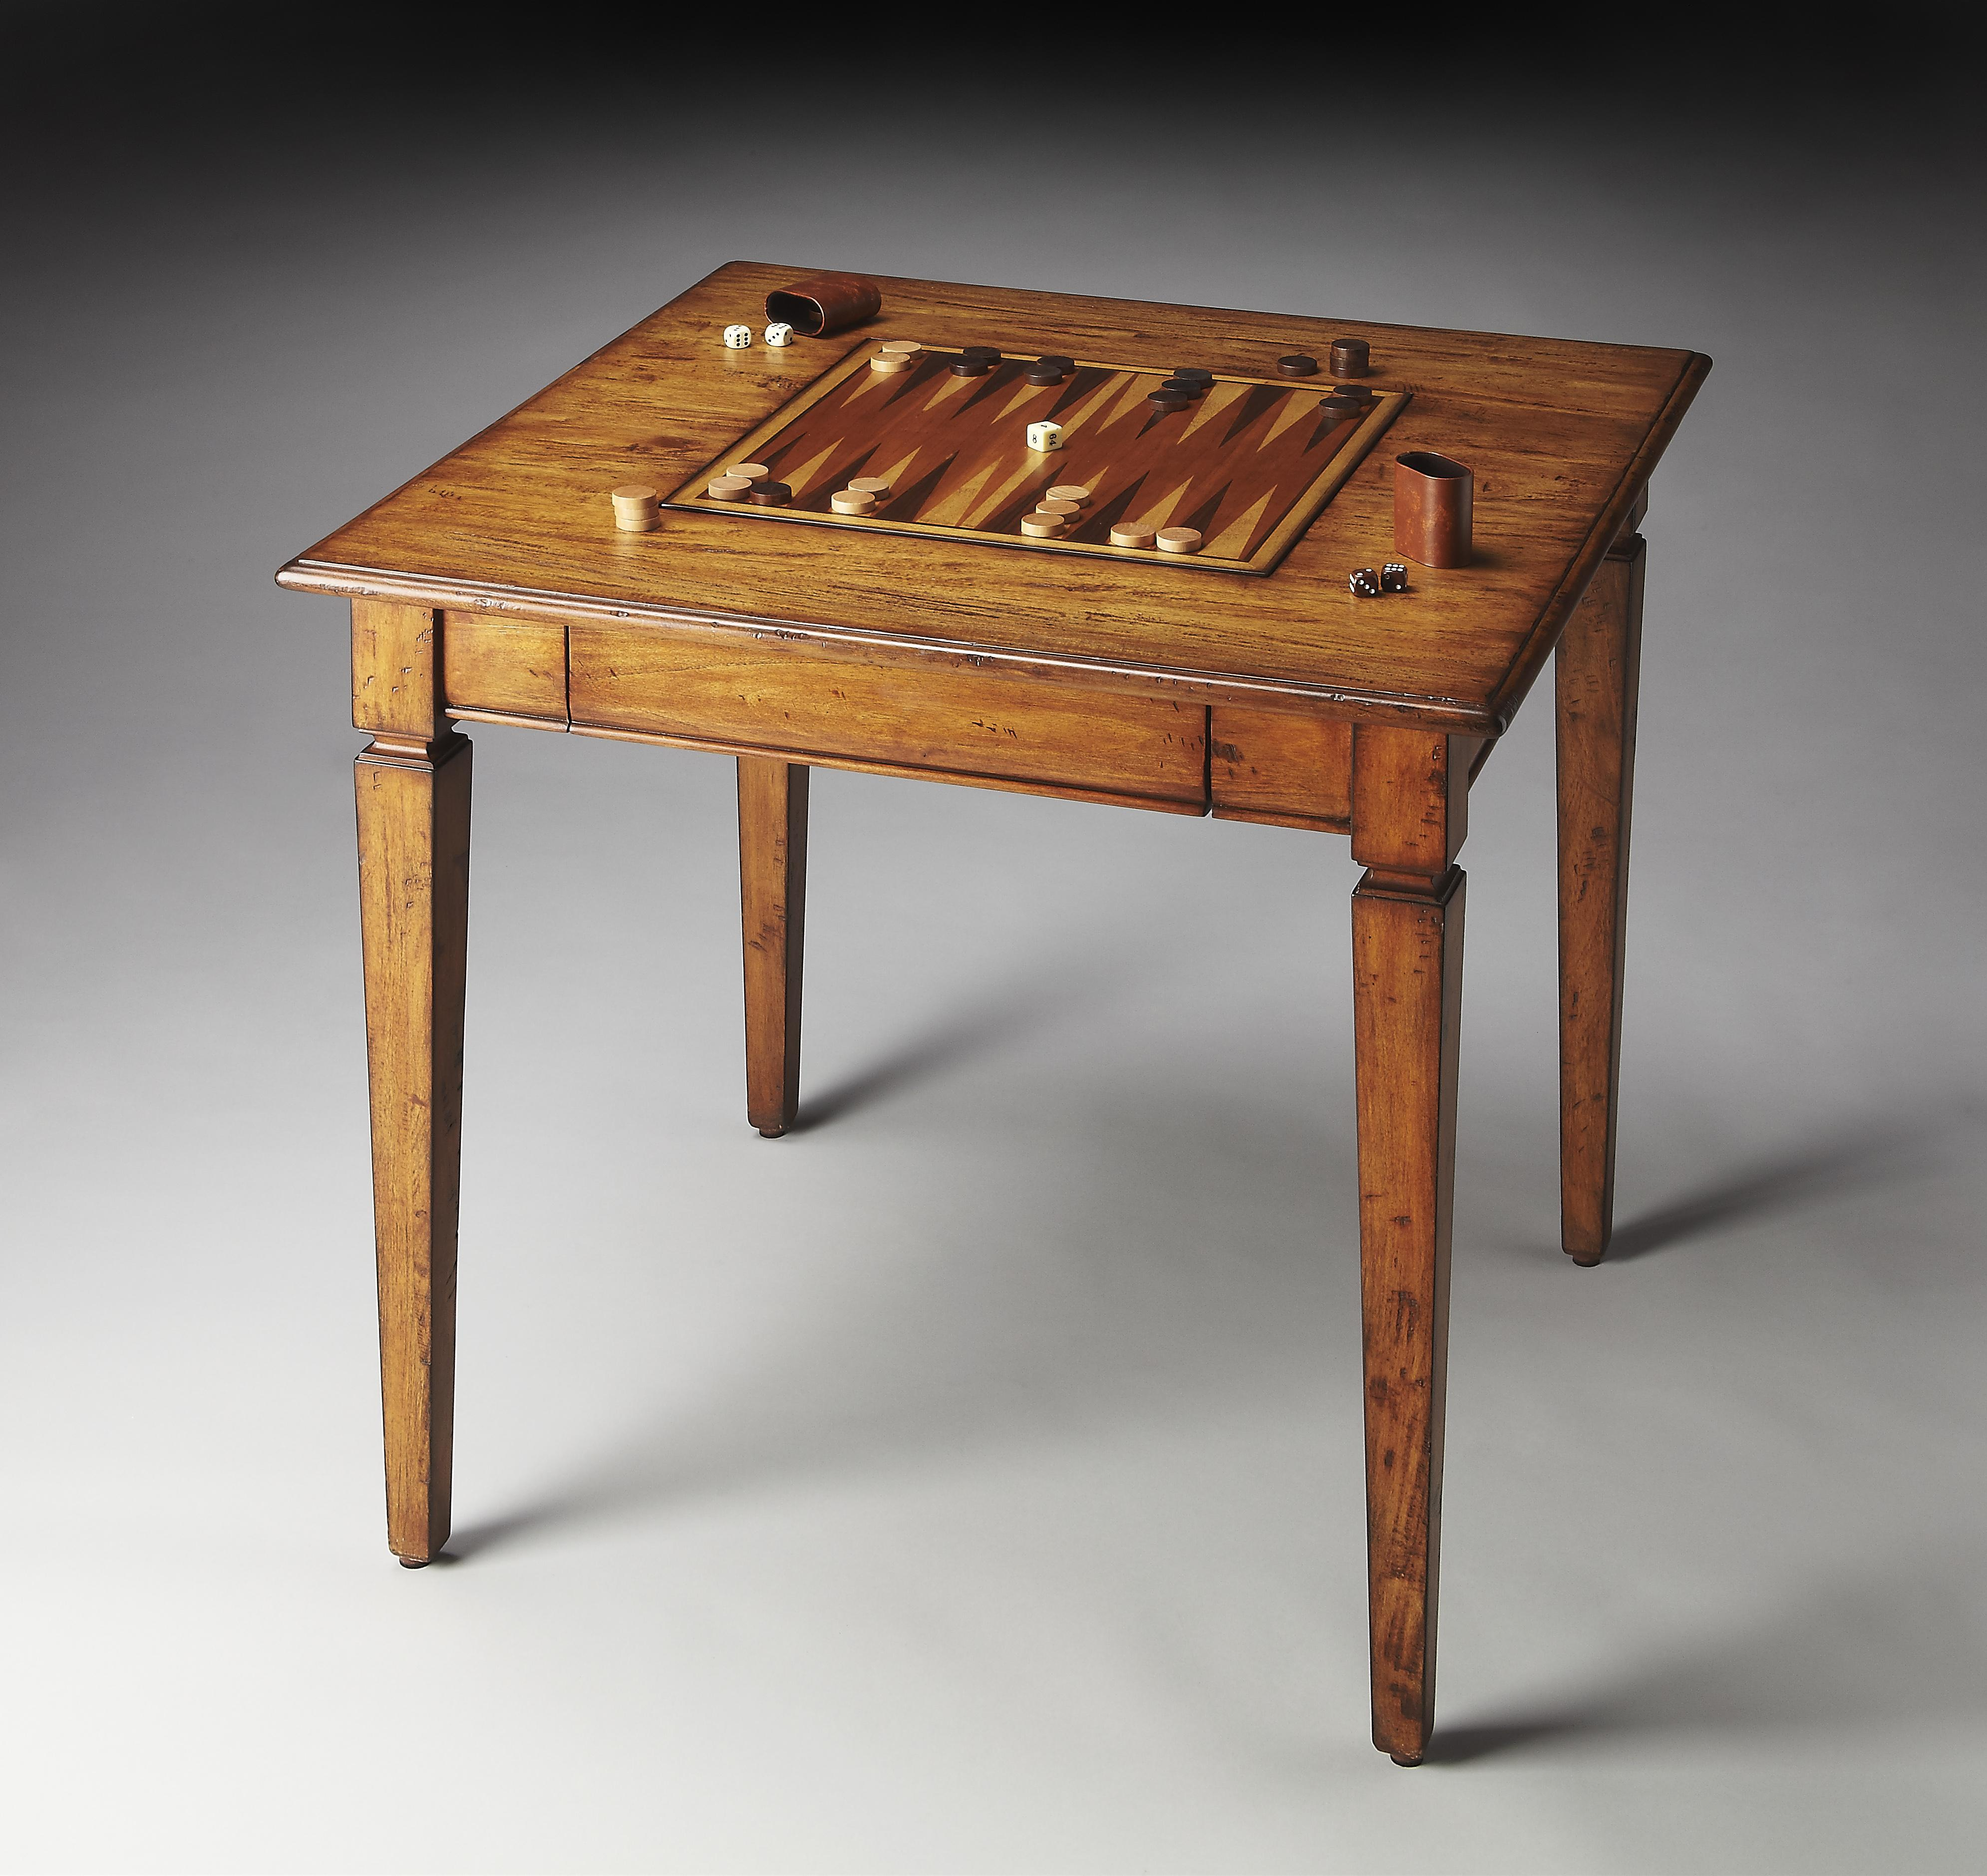 Butler Specialty Company Mountain Lodge Game Table - Item Number: 2364120